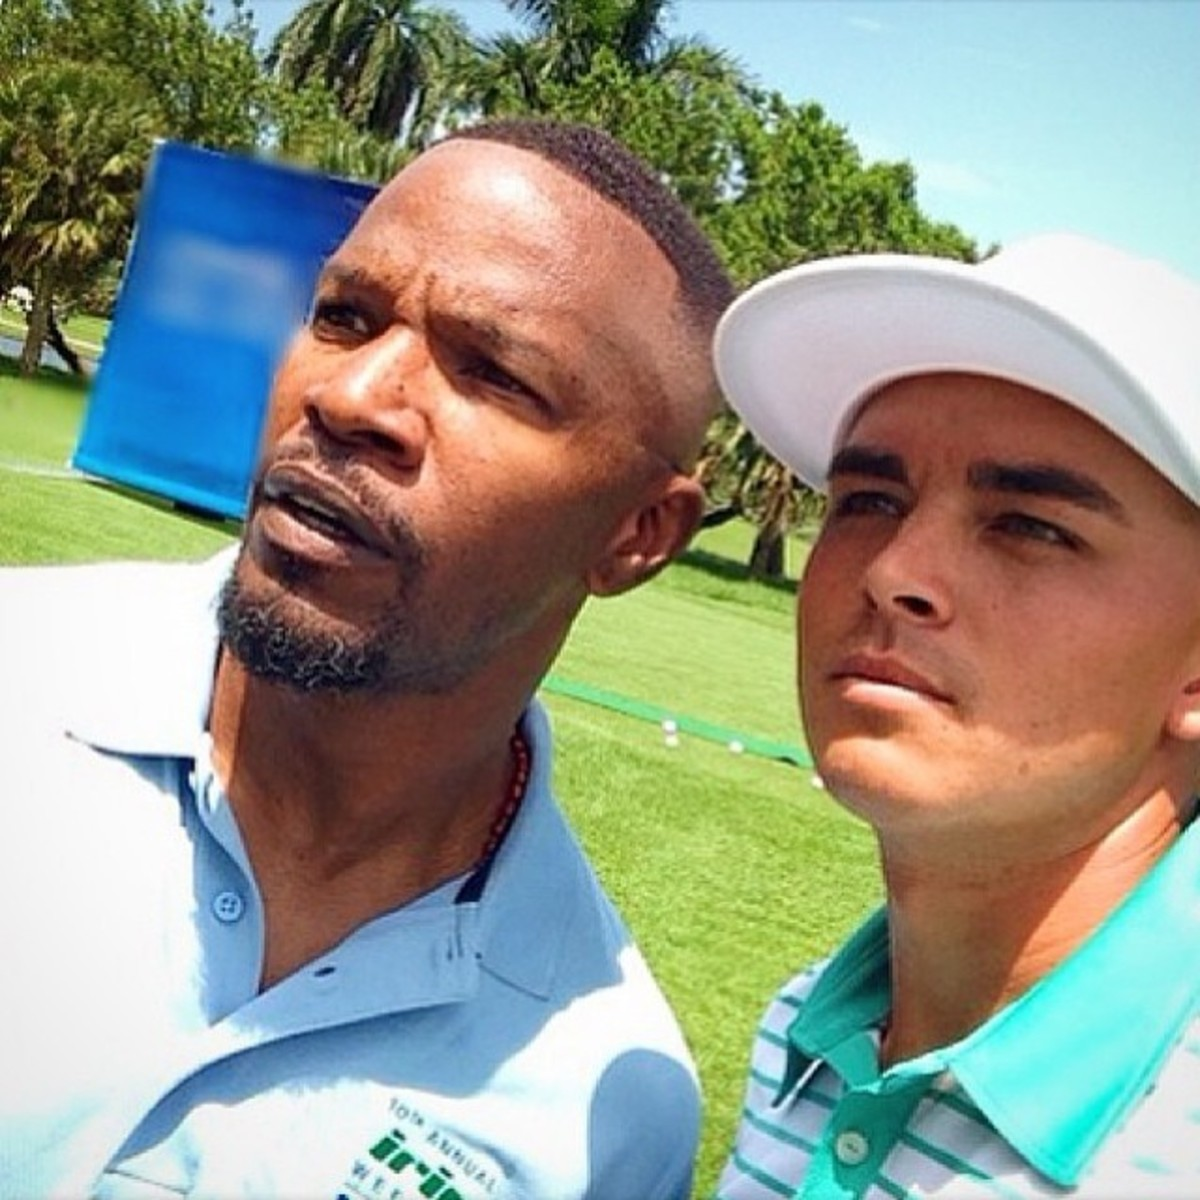 Jamie Foxx getting golf tips from Rickie Fowler